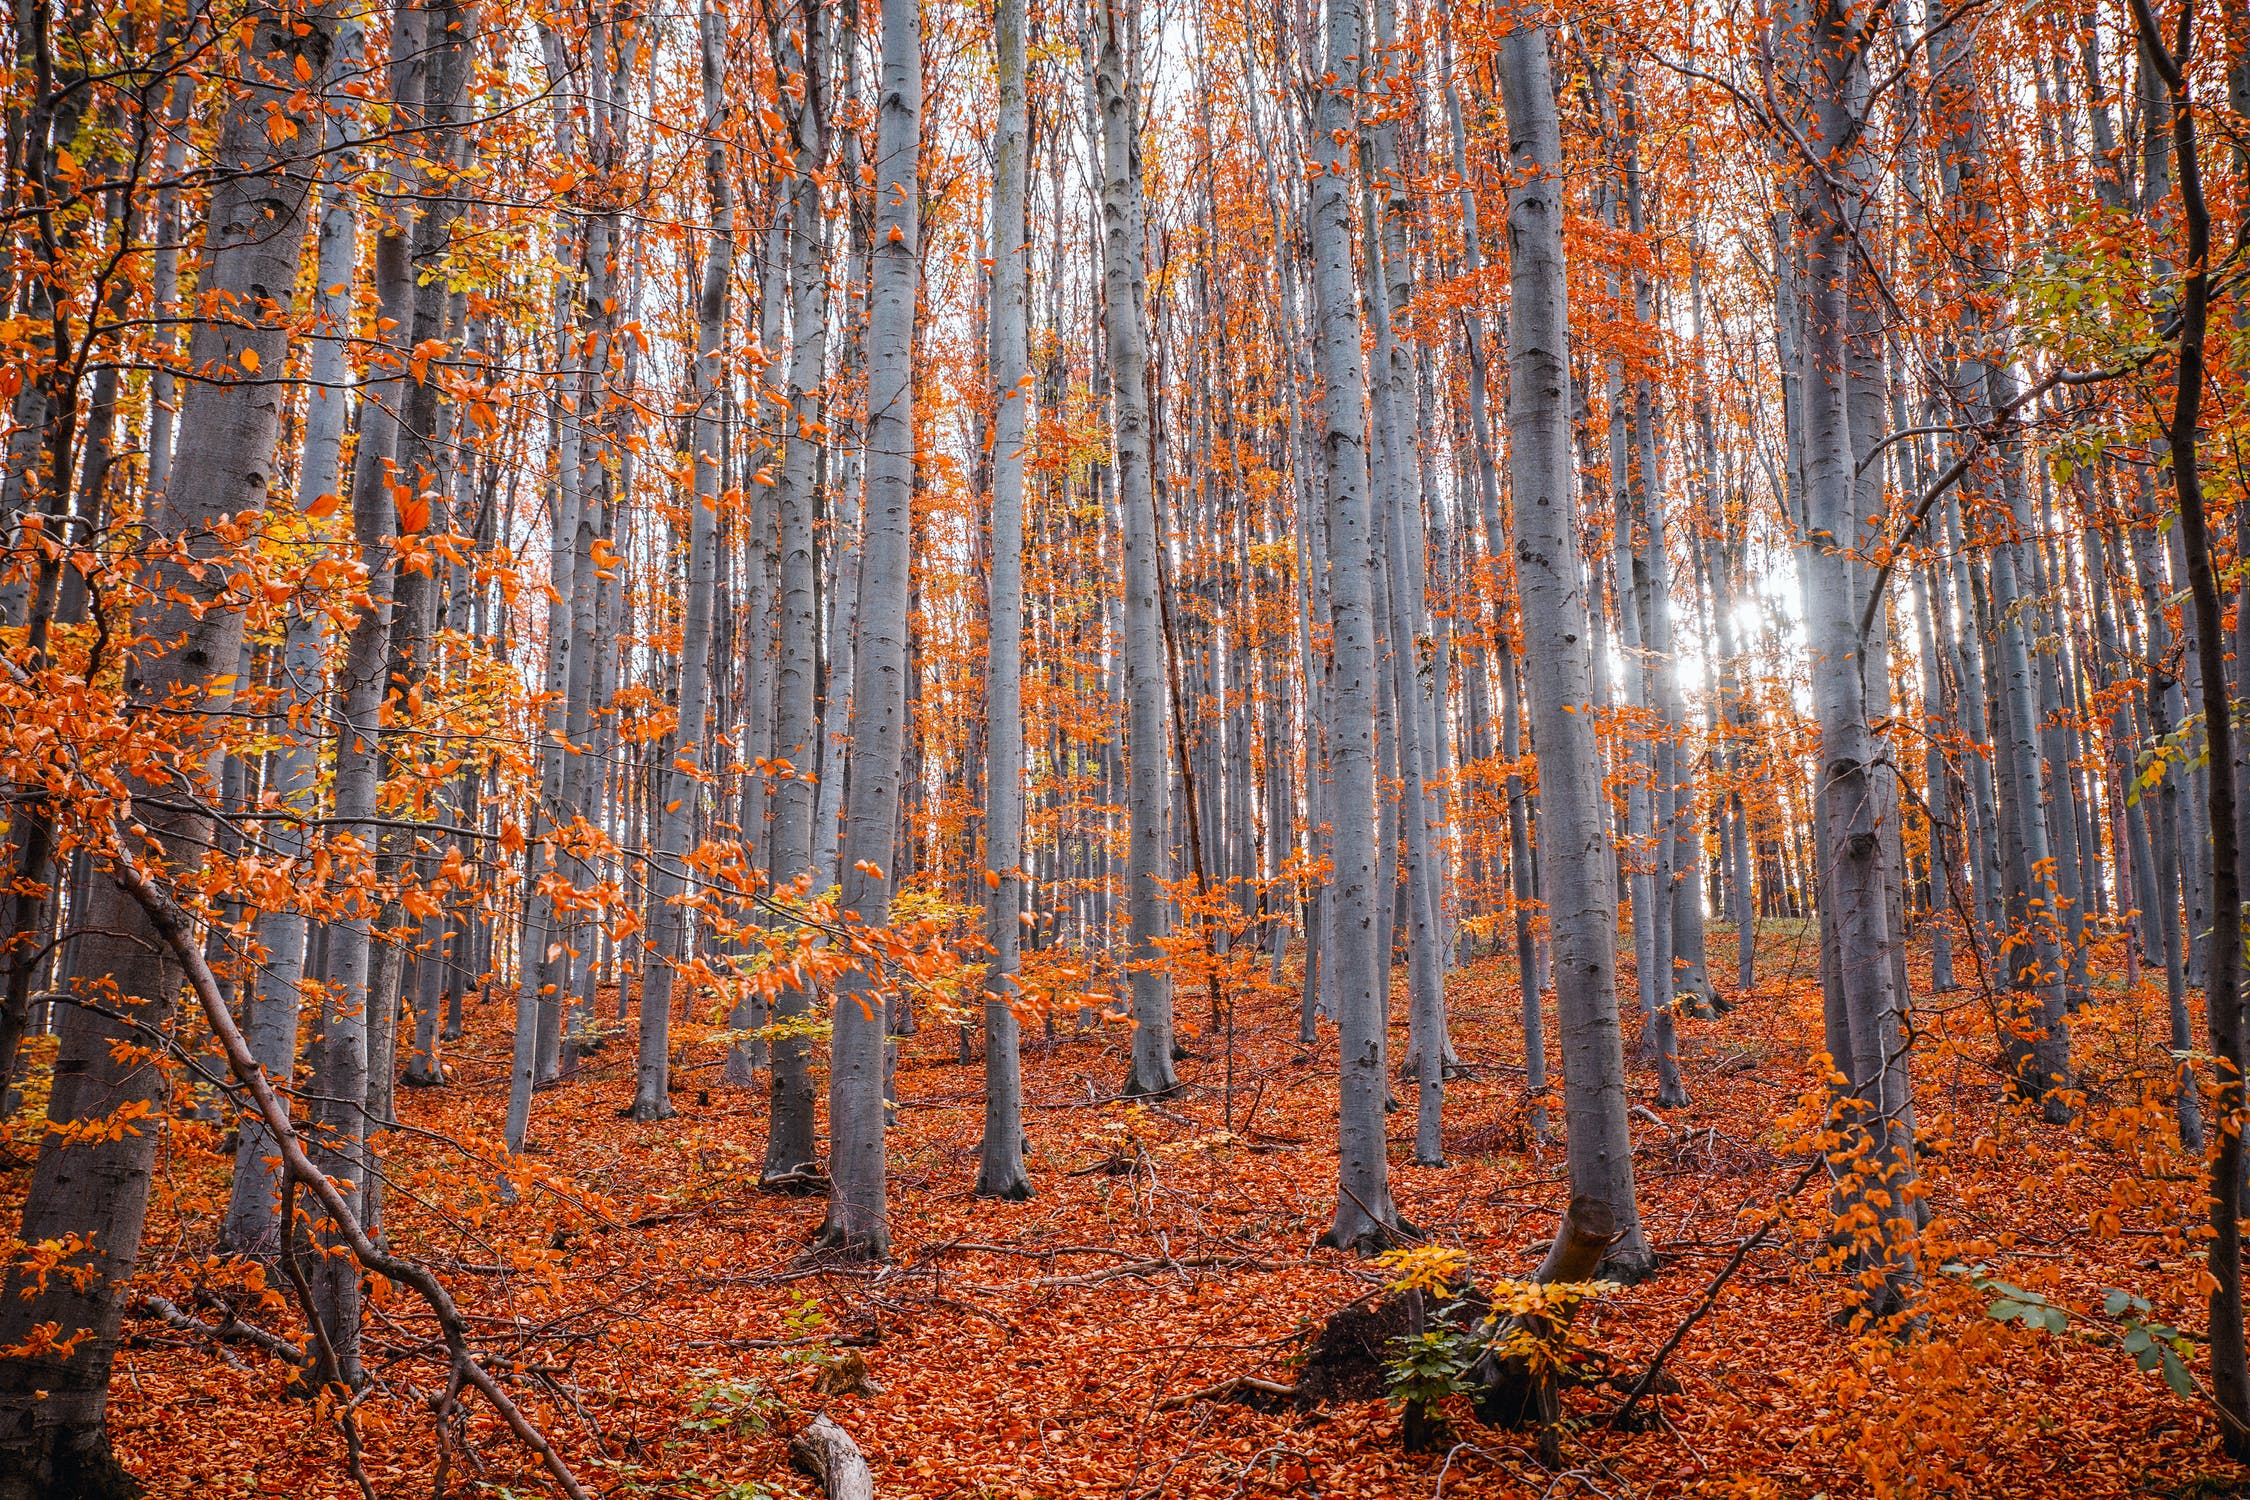 Autumnal forest